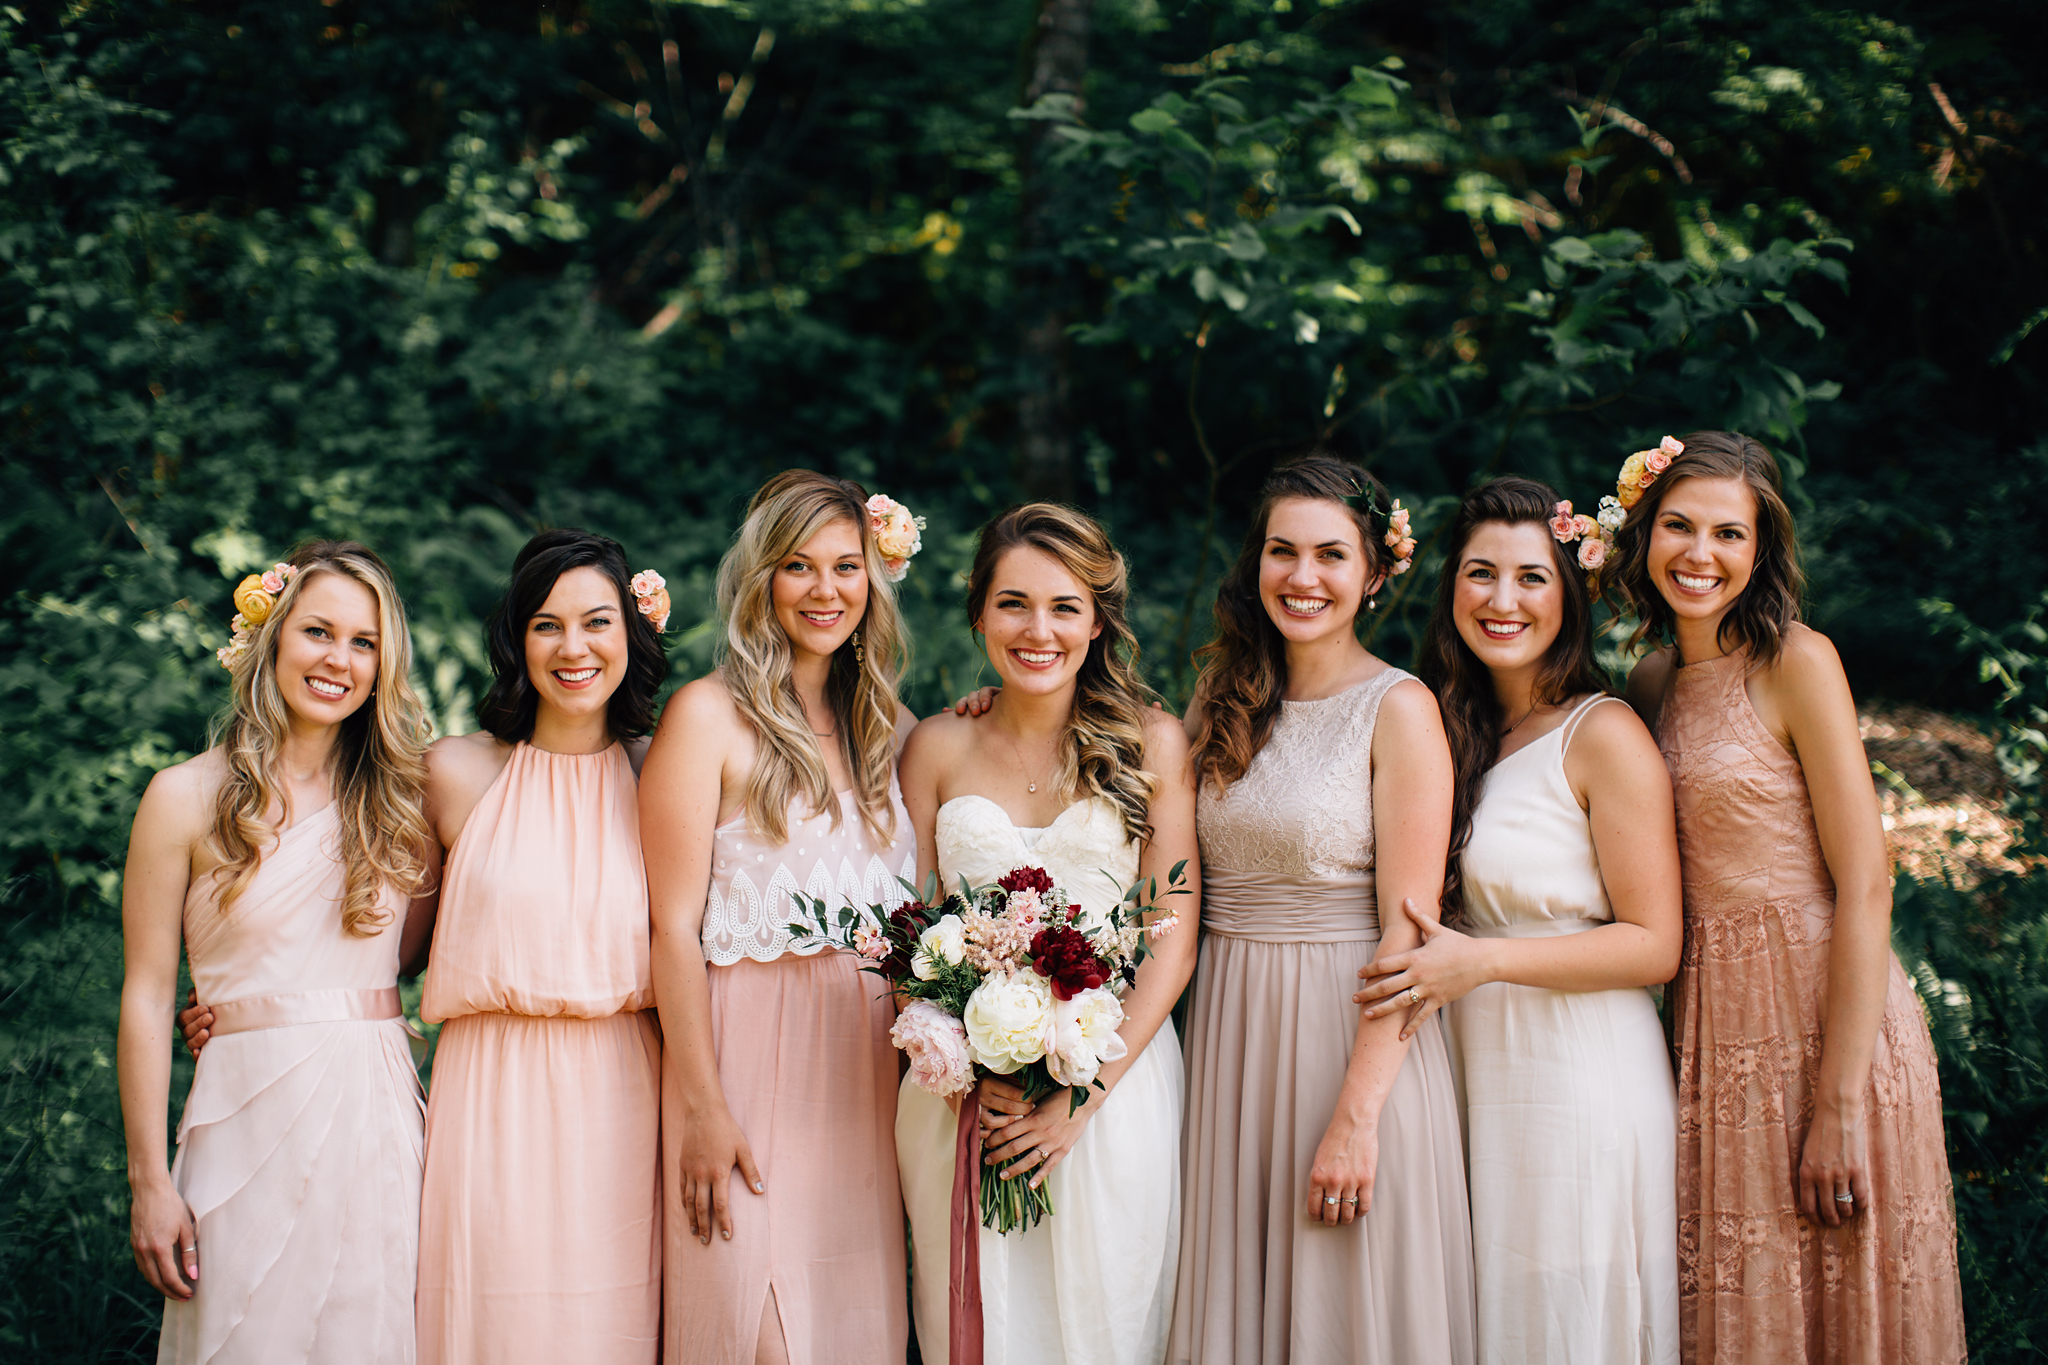 bridesmaids with bridal bouquet and flowers in their hair